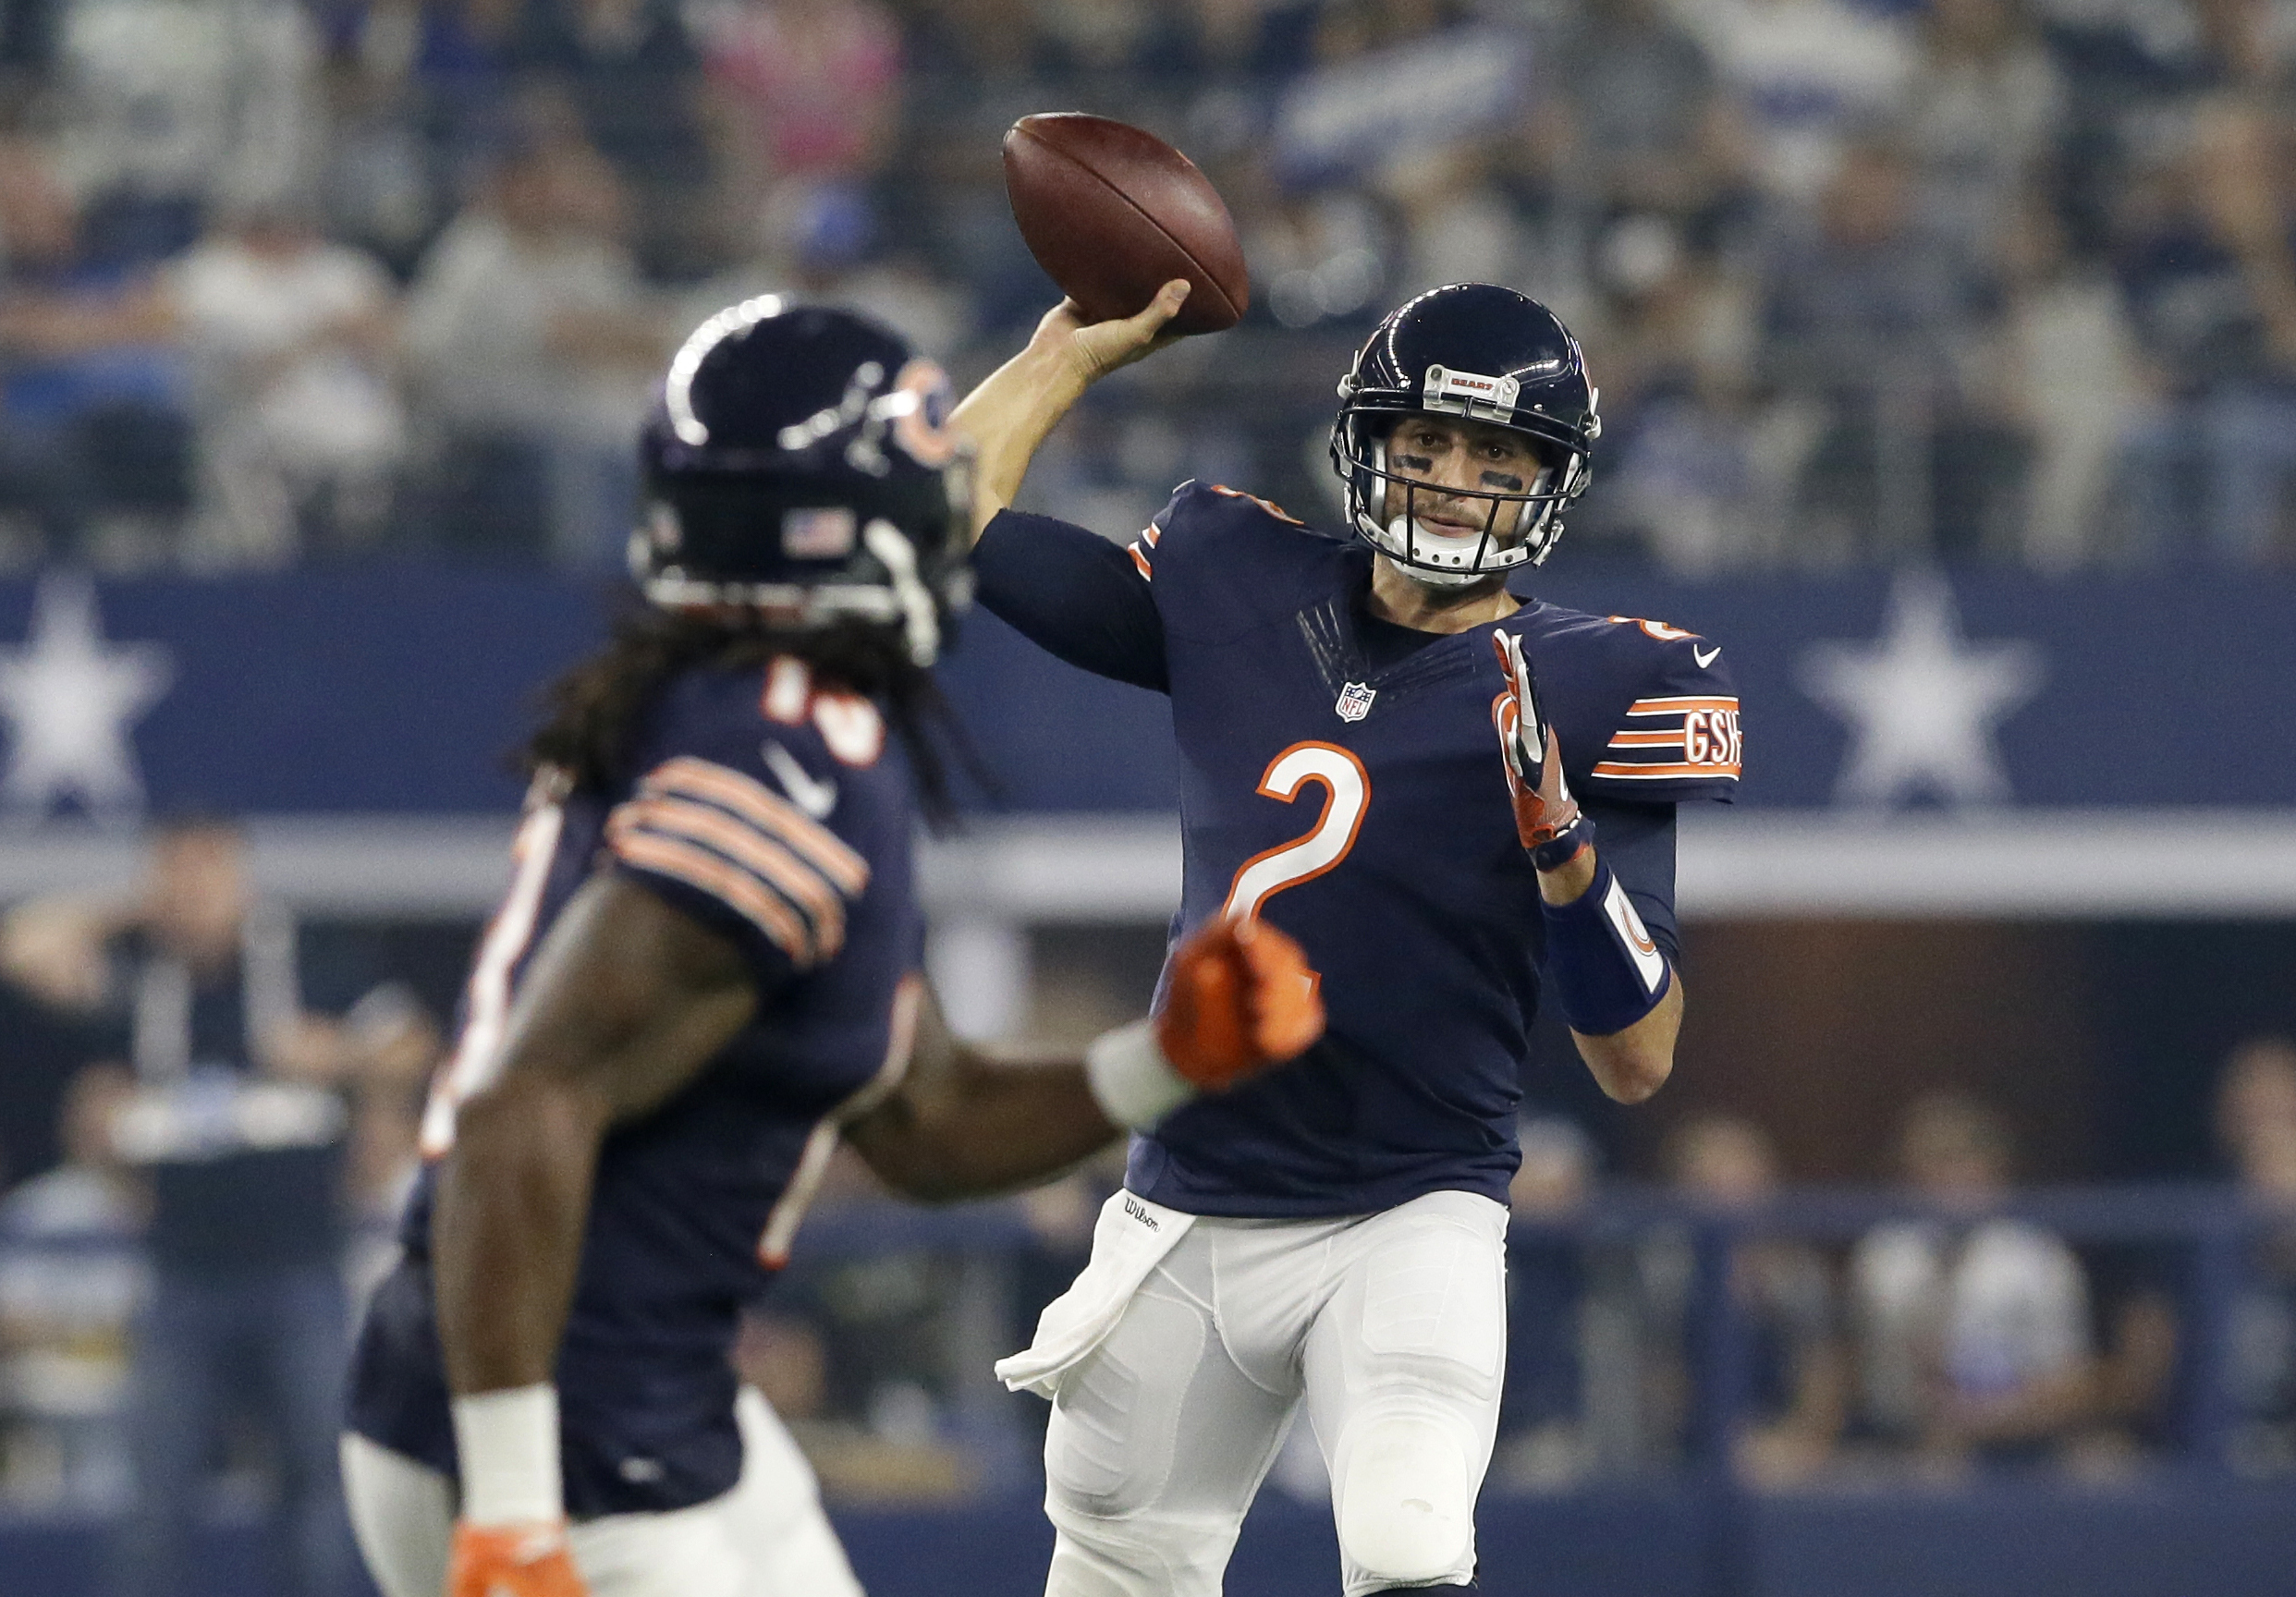 Chicago Bears quarterback Brian Hoyer (2) throws a completion to wide receiver Kevin White, front, in the second half of an NFL football game against the Dallas Cowboys on Sunday, Sept. 25, 2016, in Arlington, Texas. (AP Photo/LM Otero)